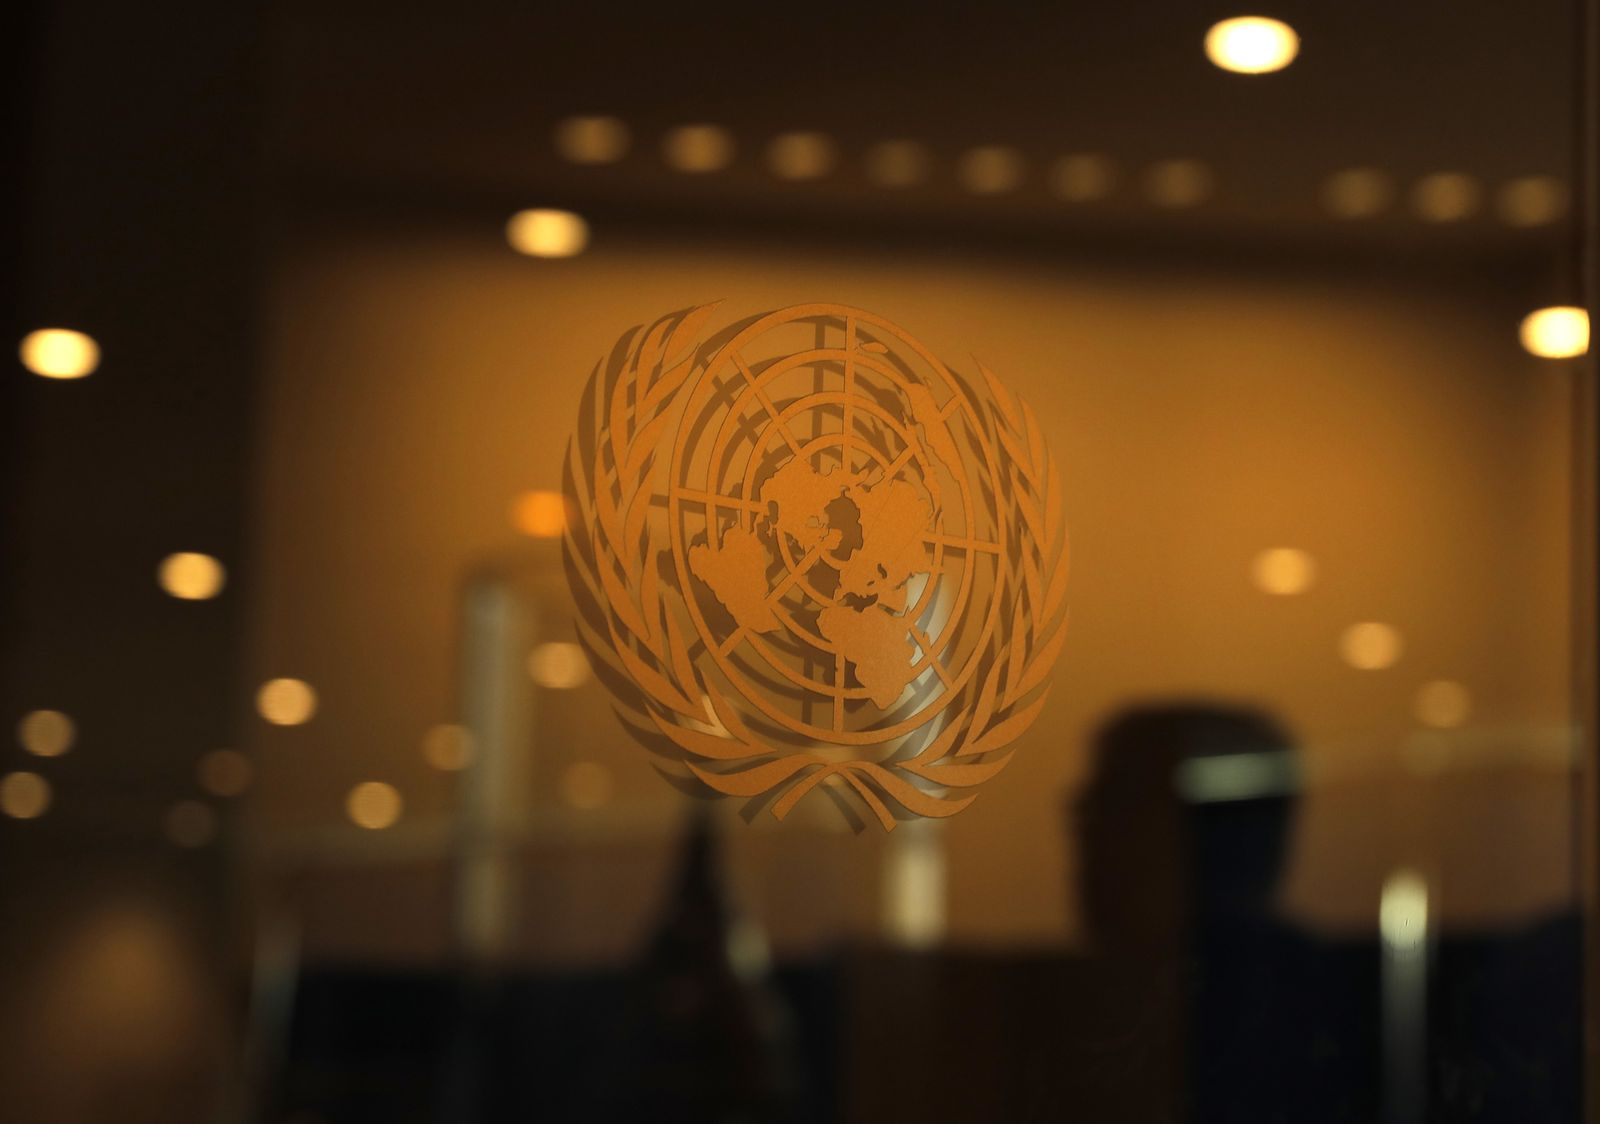 The United Nations logo is seen during the 2019 United Nations Climate Action Summit at U.N. headquarters in New York City, New York, U.S.